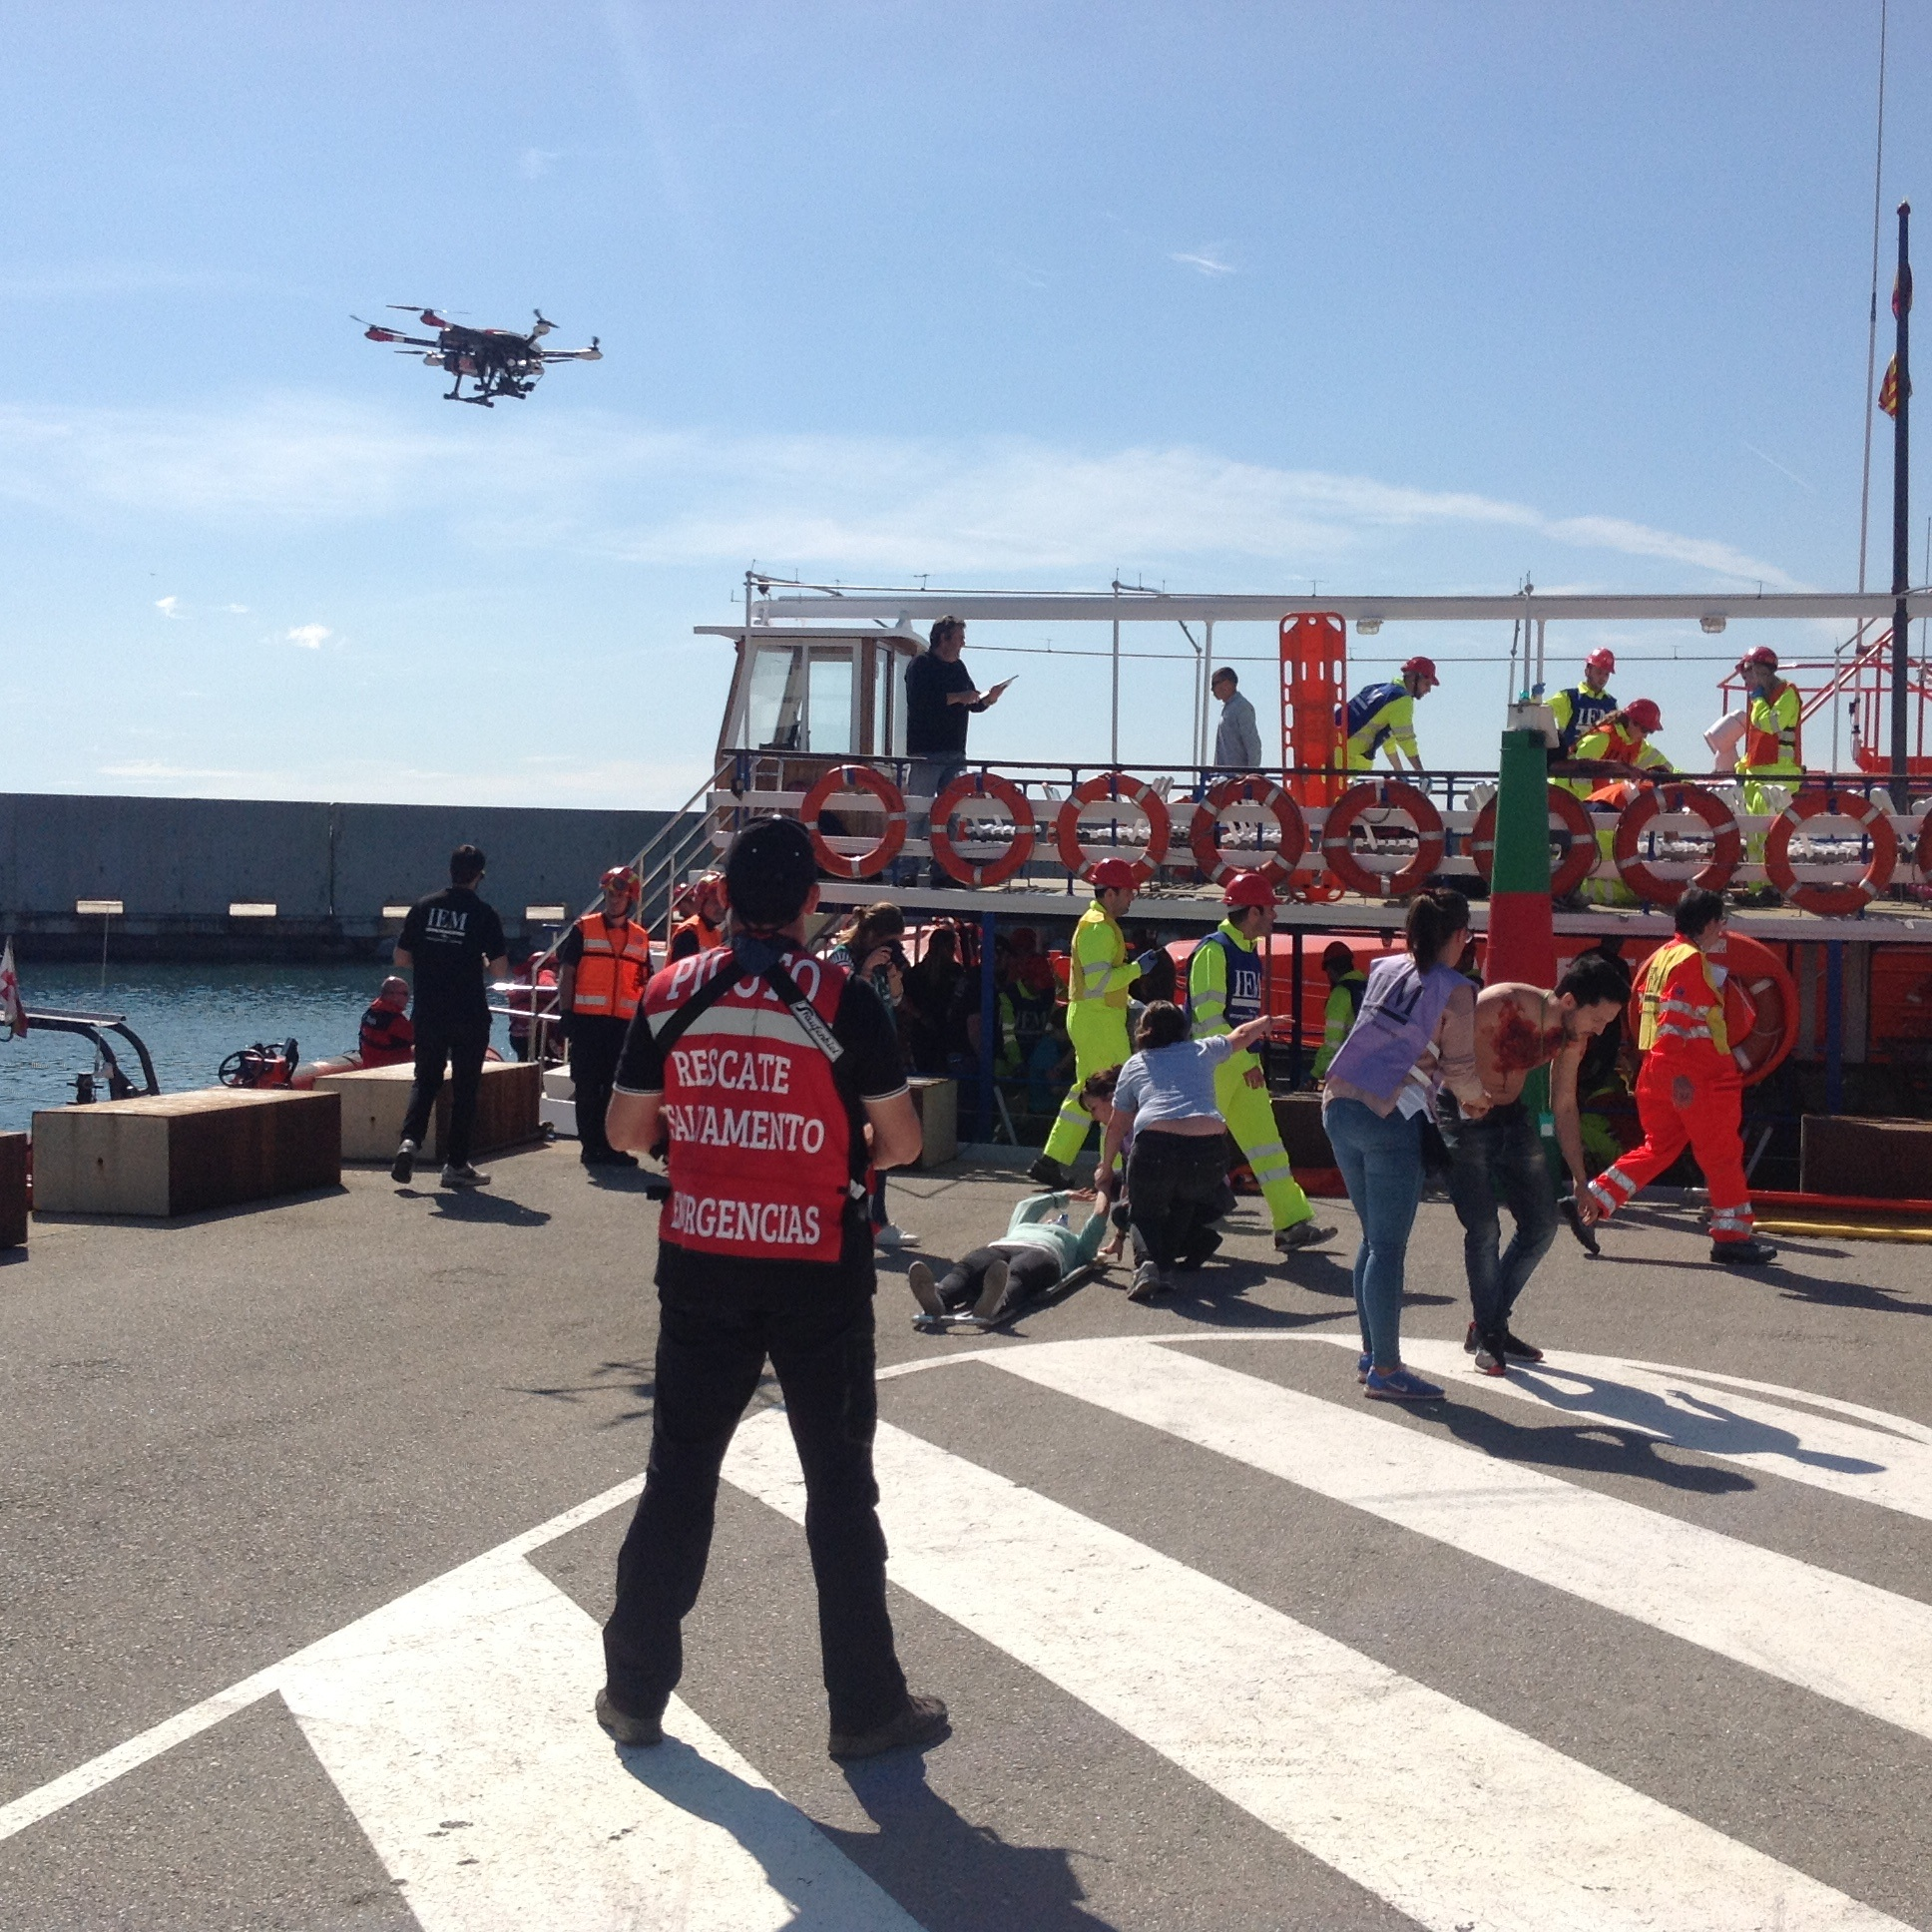 boat-drone-race-track-accident-emergency-rescue-uav-rpa-797302.jpg